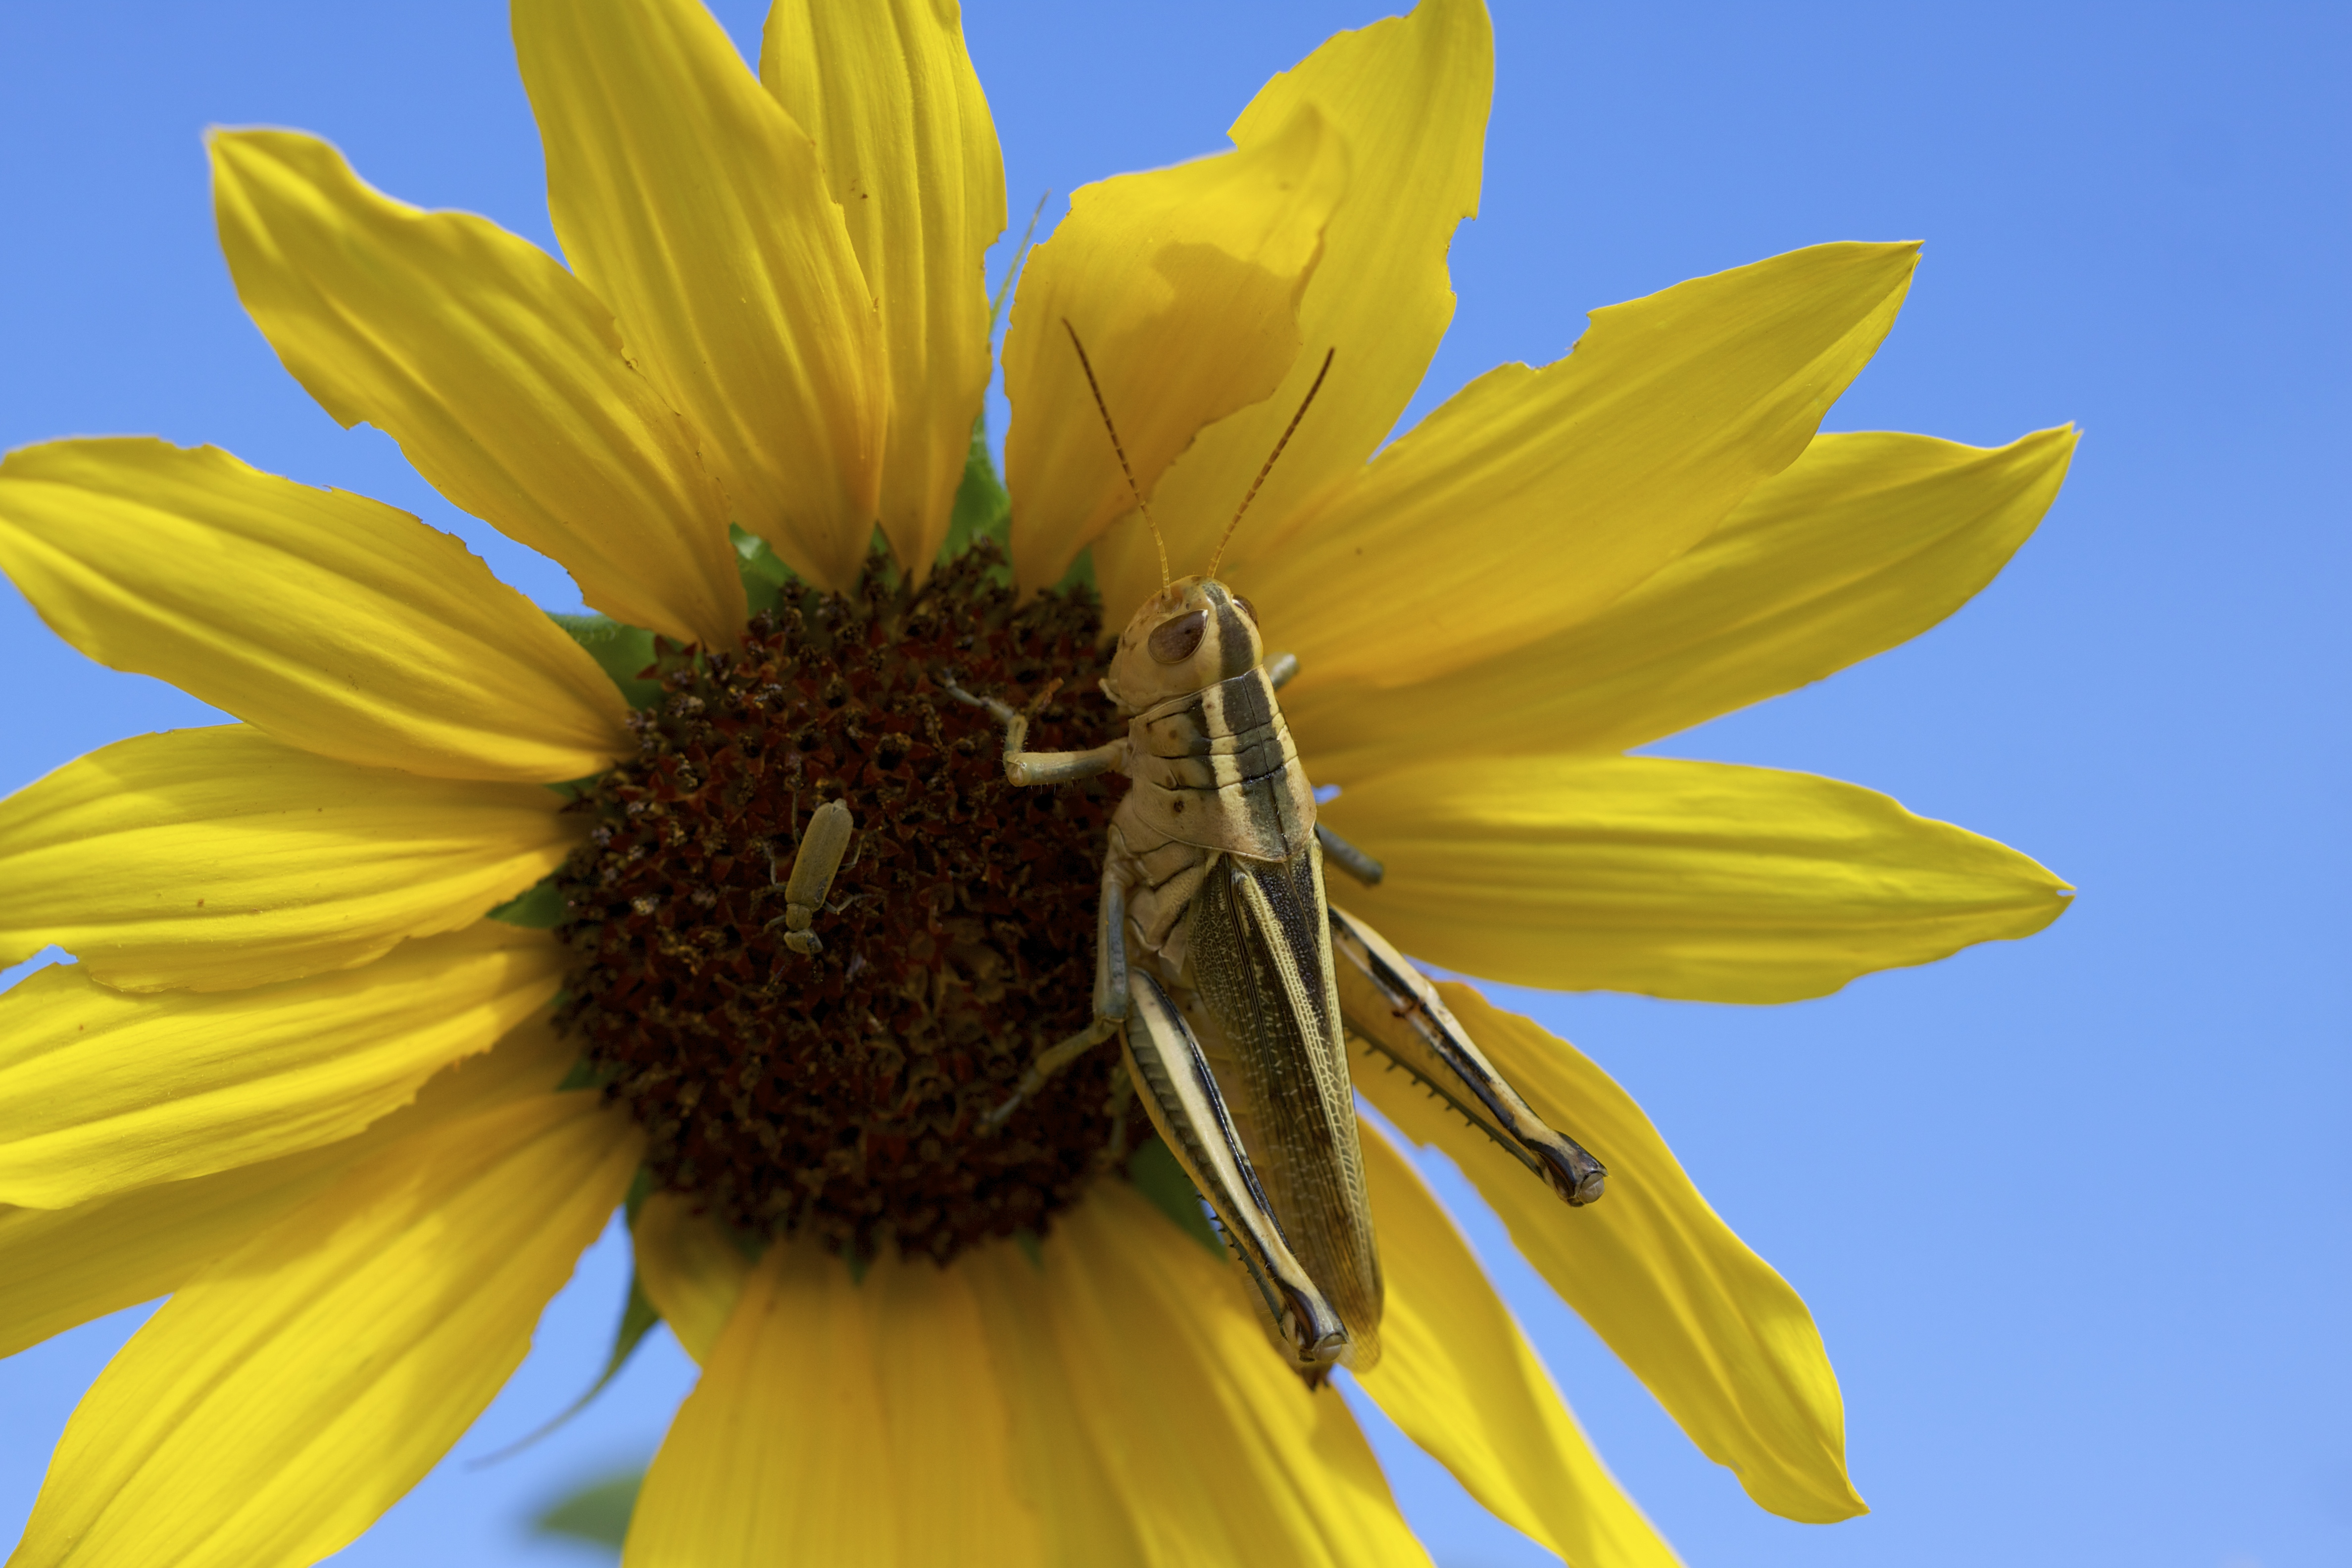 Despite not being in right relationship with the grasshoppers, I can recognize a striking composition when it's given.